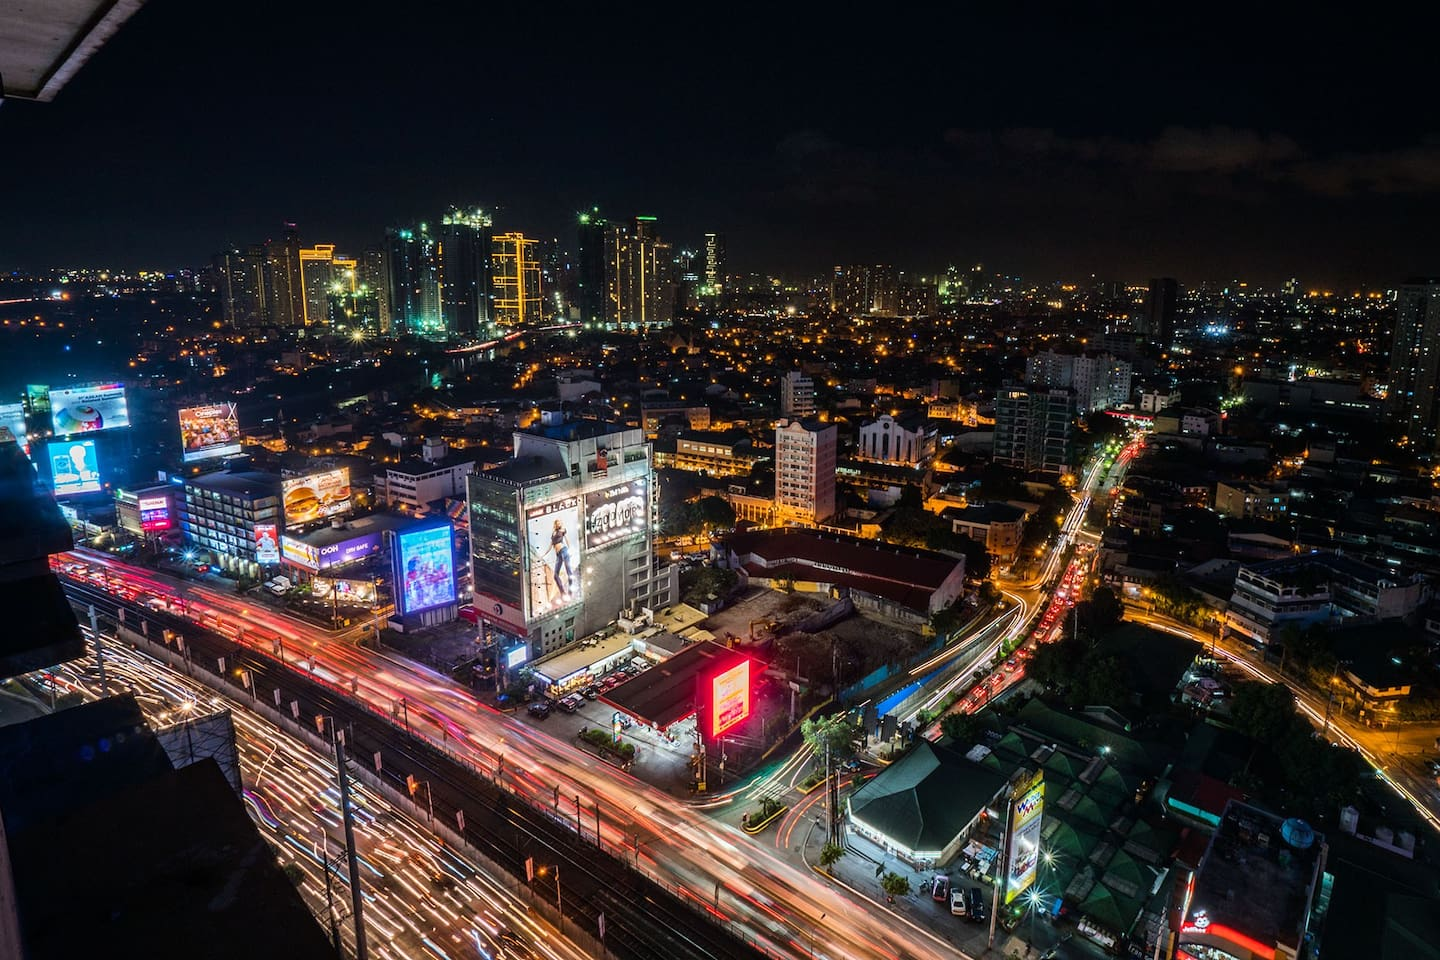 Actual night time view from the apartment's window.  Welcome to Manila!